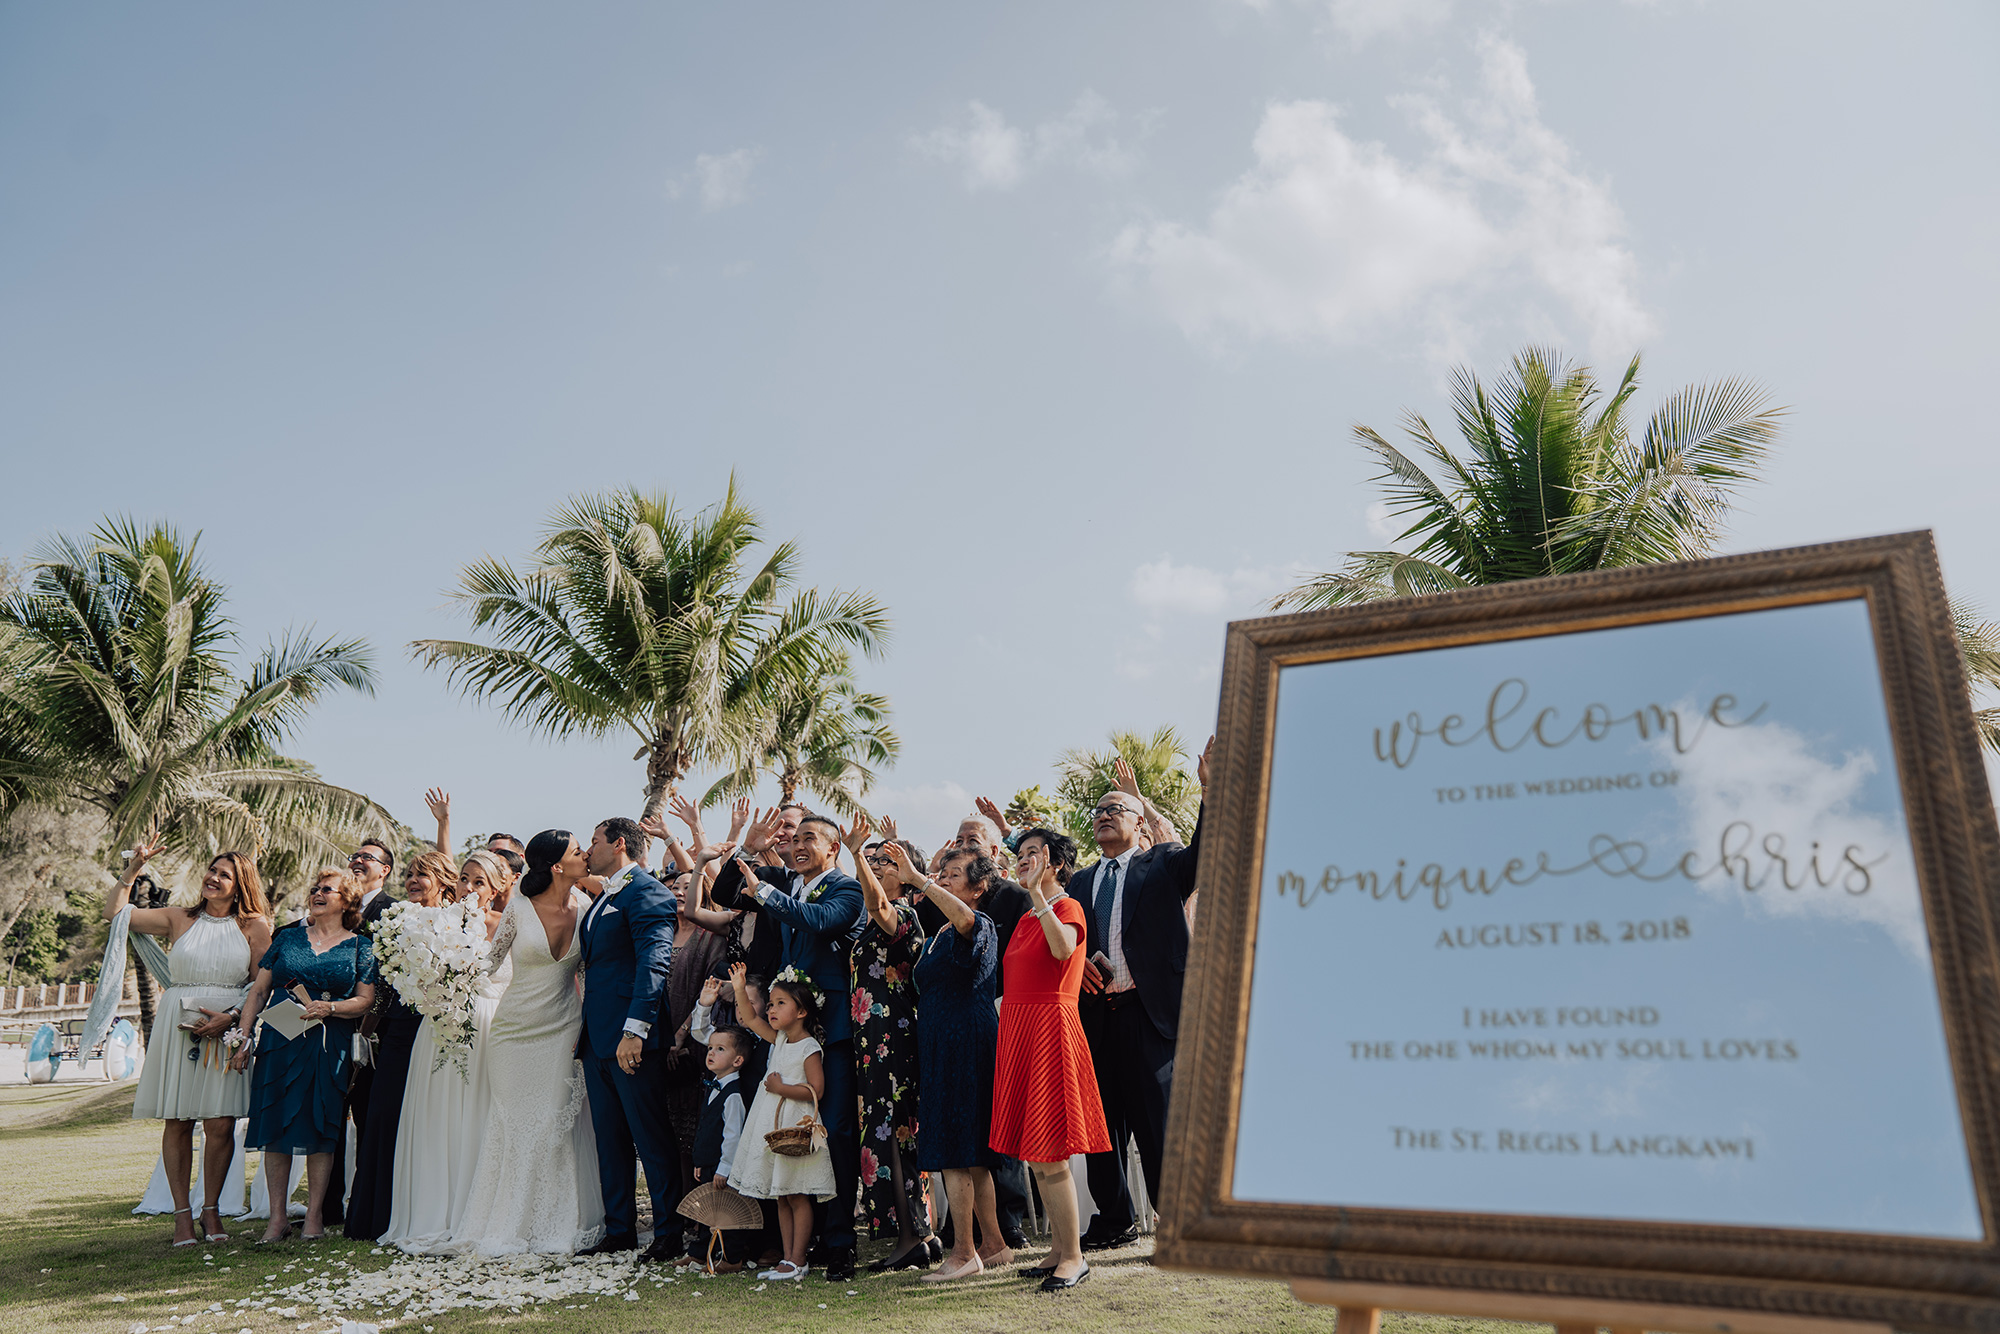 Langkawi, home to luxury weddings